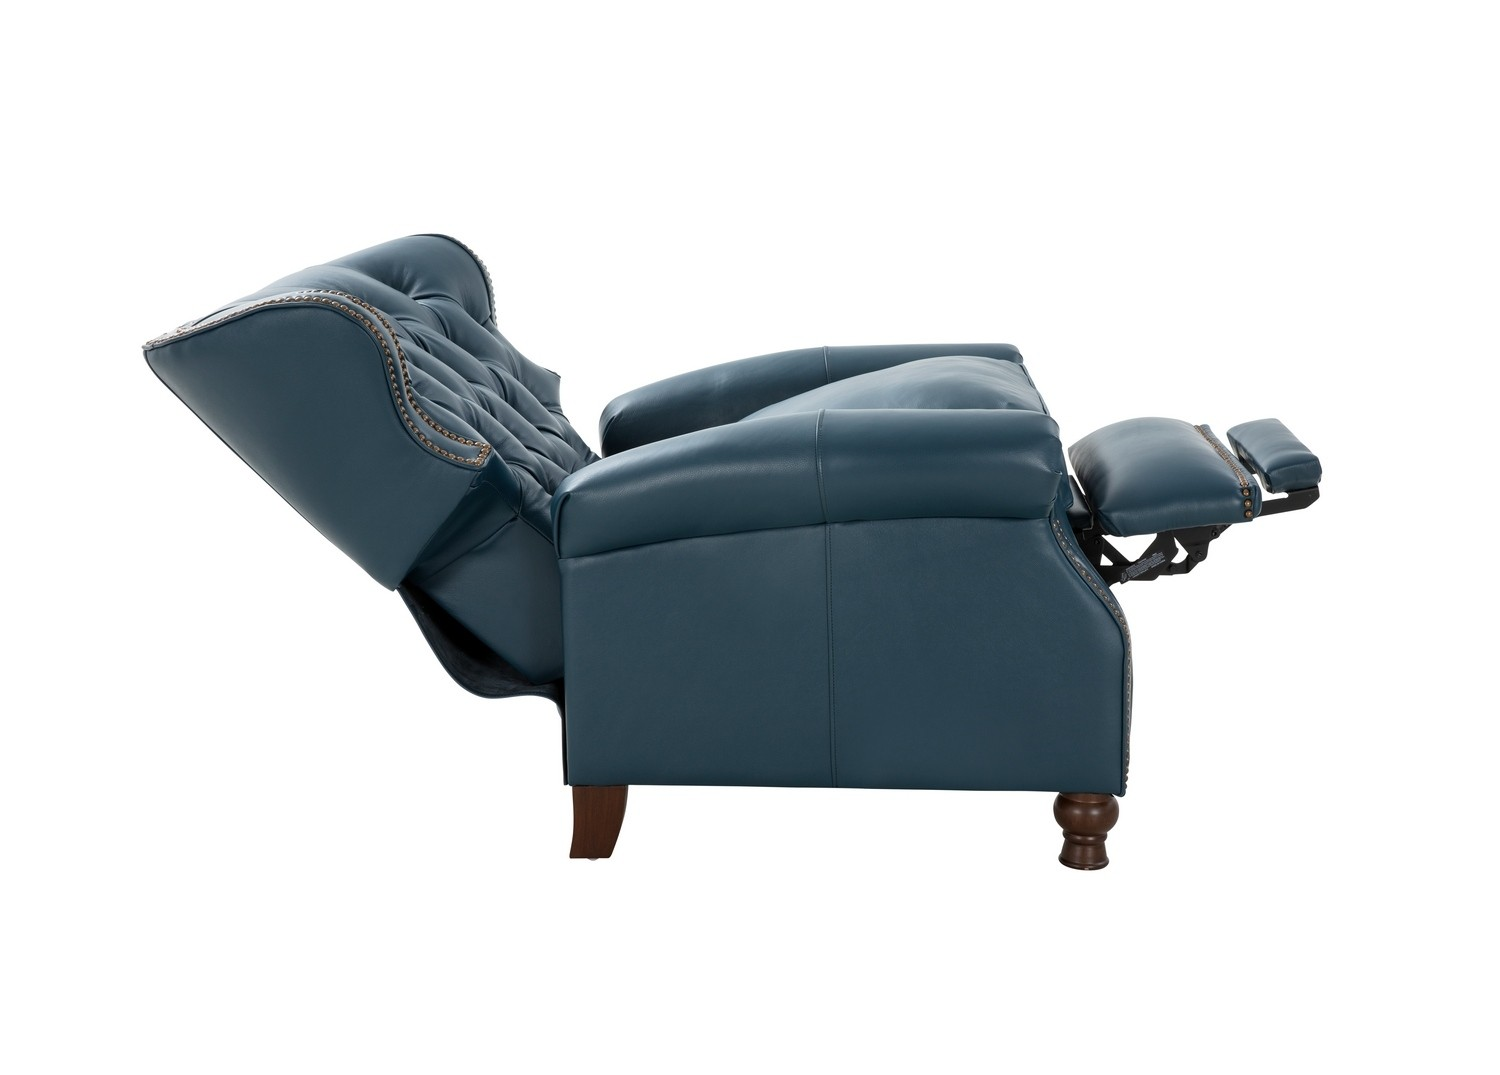 Barcalounger Presidential Recliner Chair - Prestin Yale Blue/All Leather